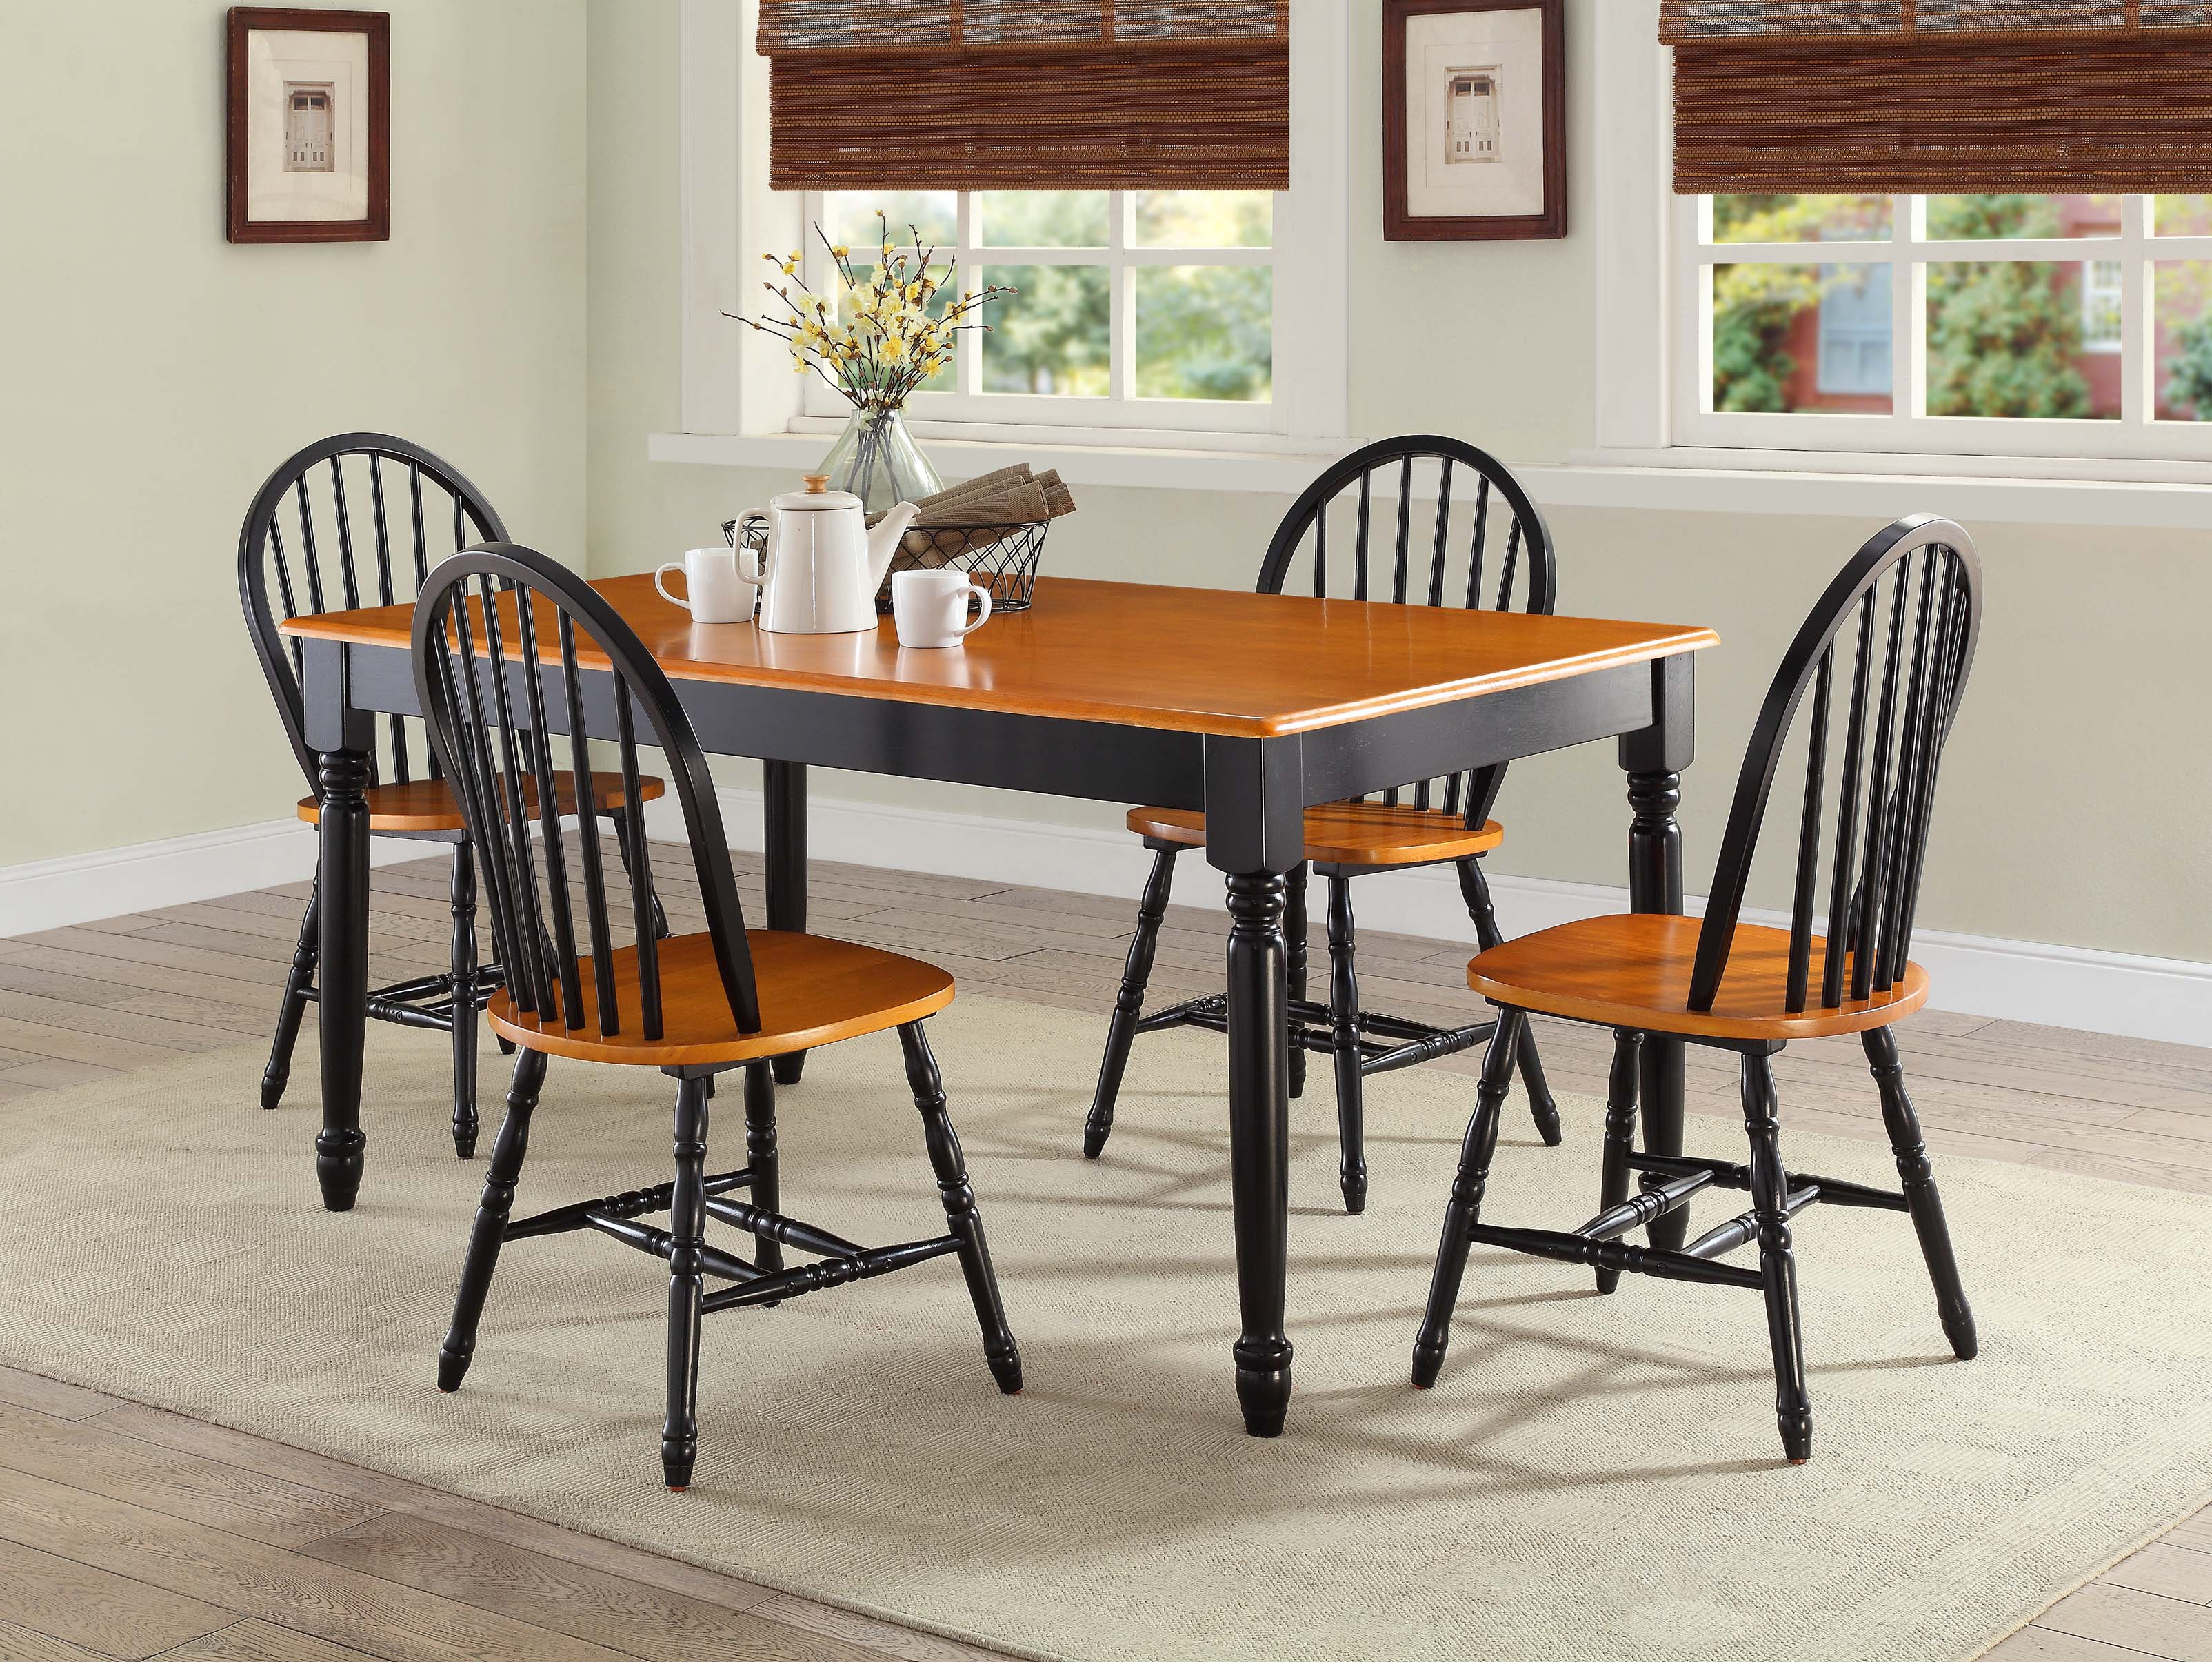 Beau Better Homes And Gardens Autumn Lane Windsor Chairs, Set Of 2, Black And Oak